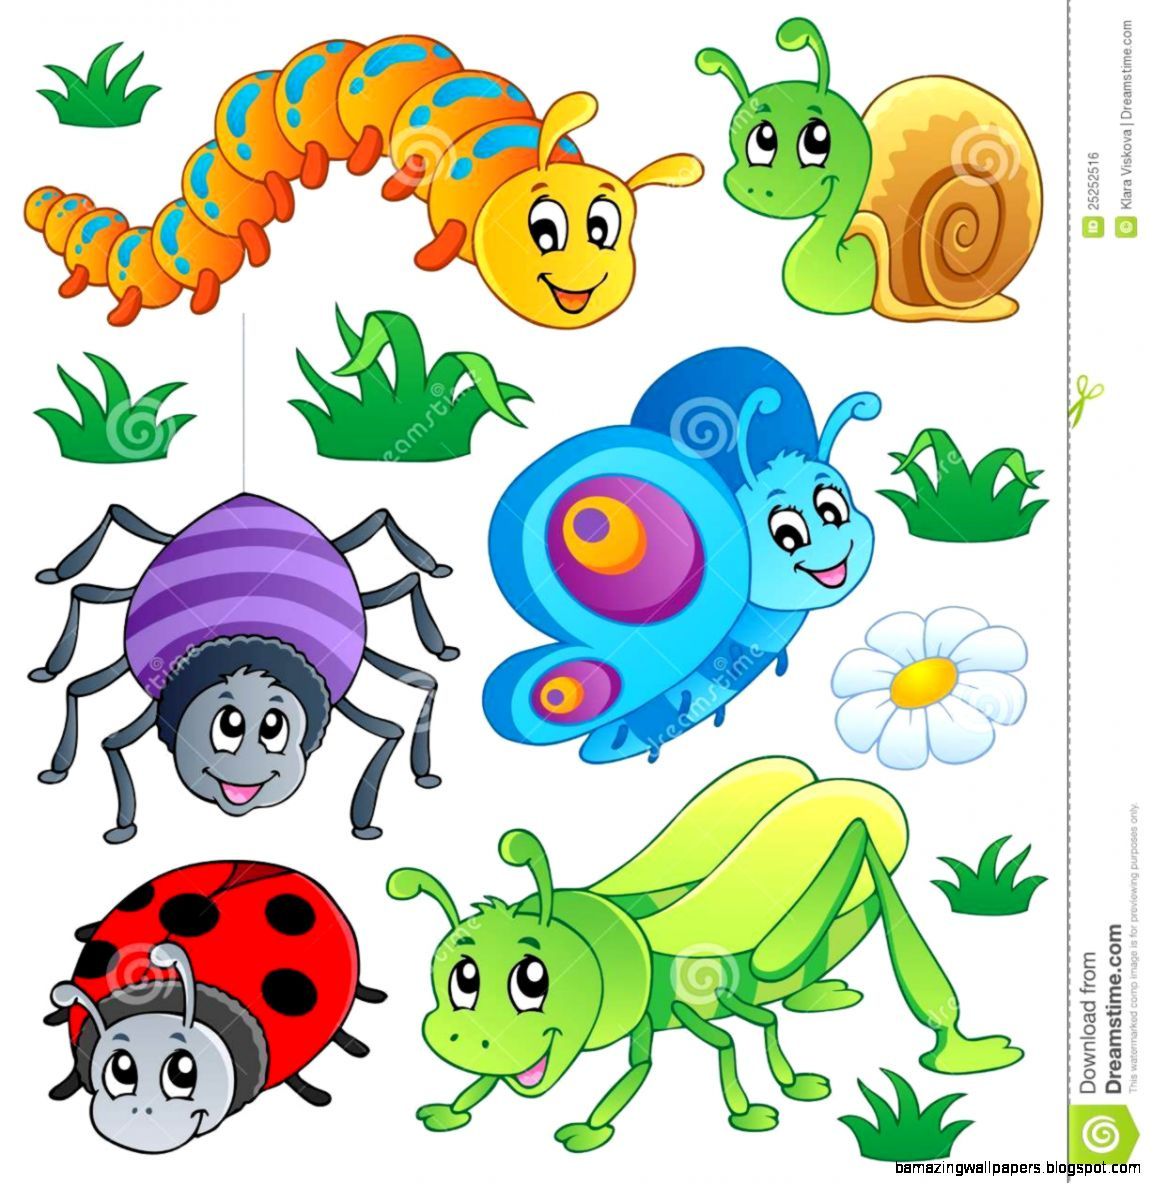 Amazing Clip Art: Cute Insect Clipart